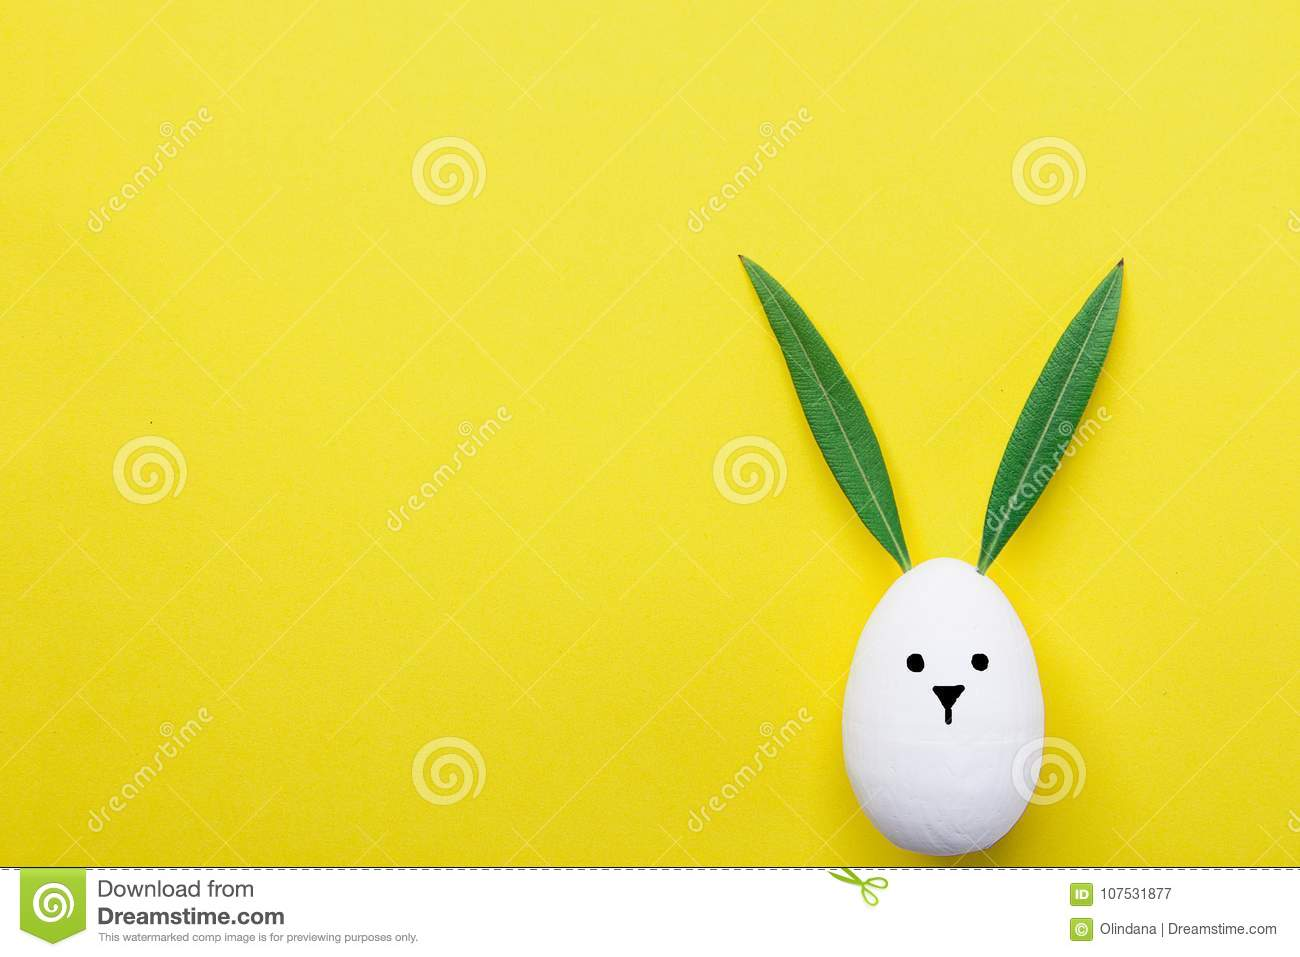 Decorative White Painted Easter Egg Bunny with Drawn Cute Kawaii Face. Green Leaves as Ears. Pastel Yellow Background. Spring